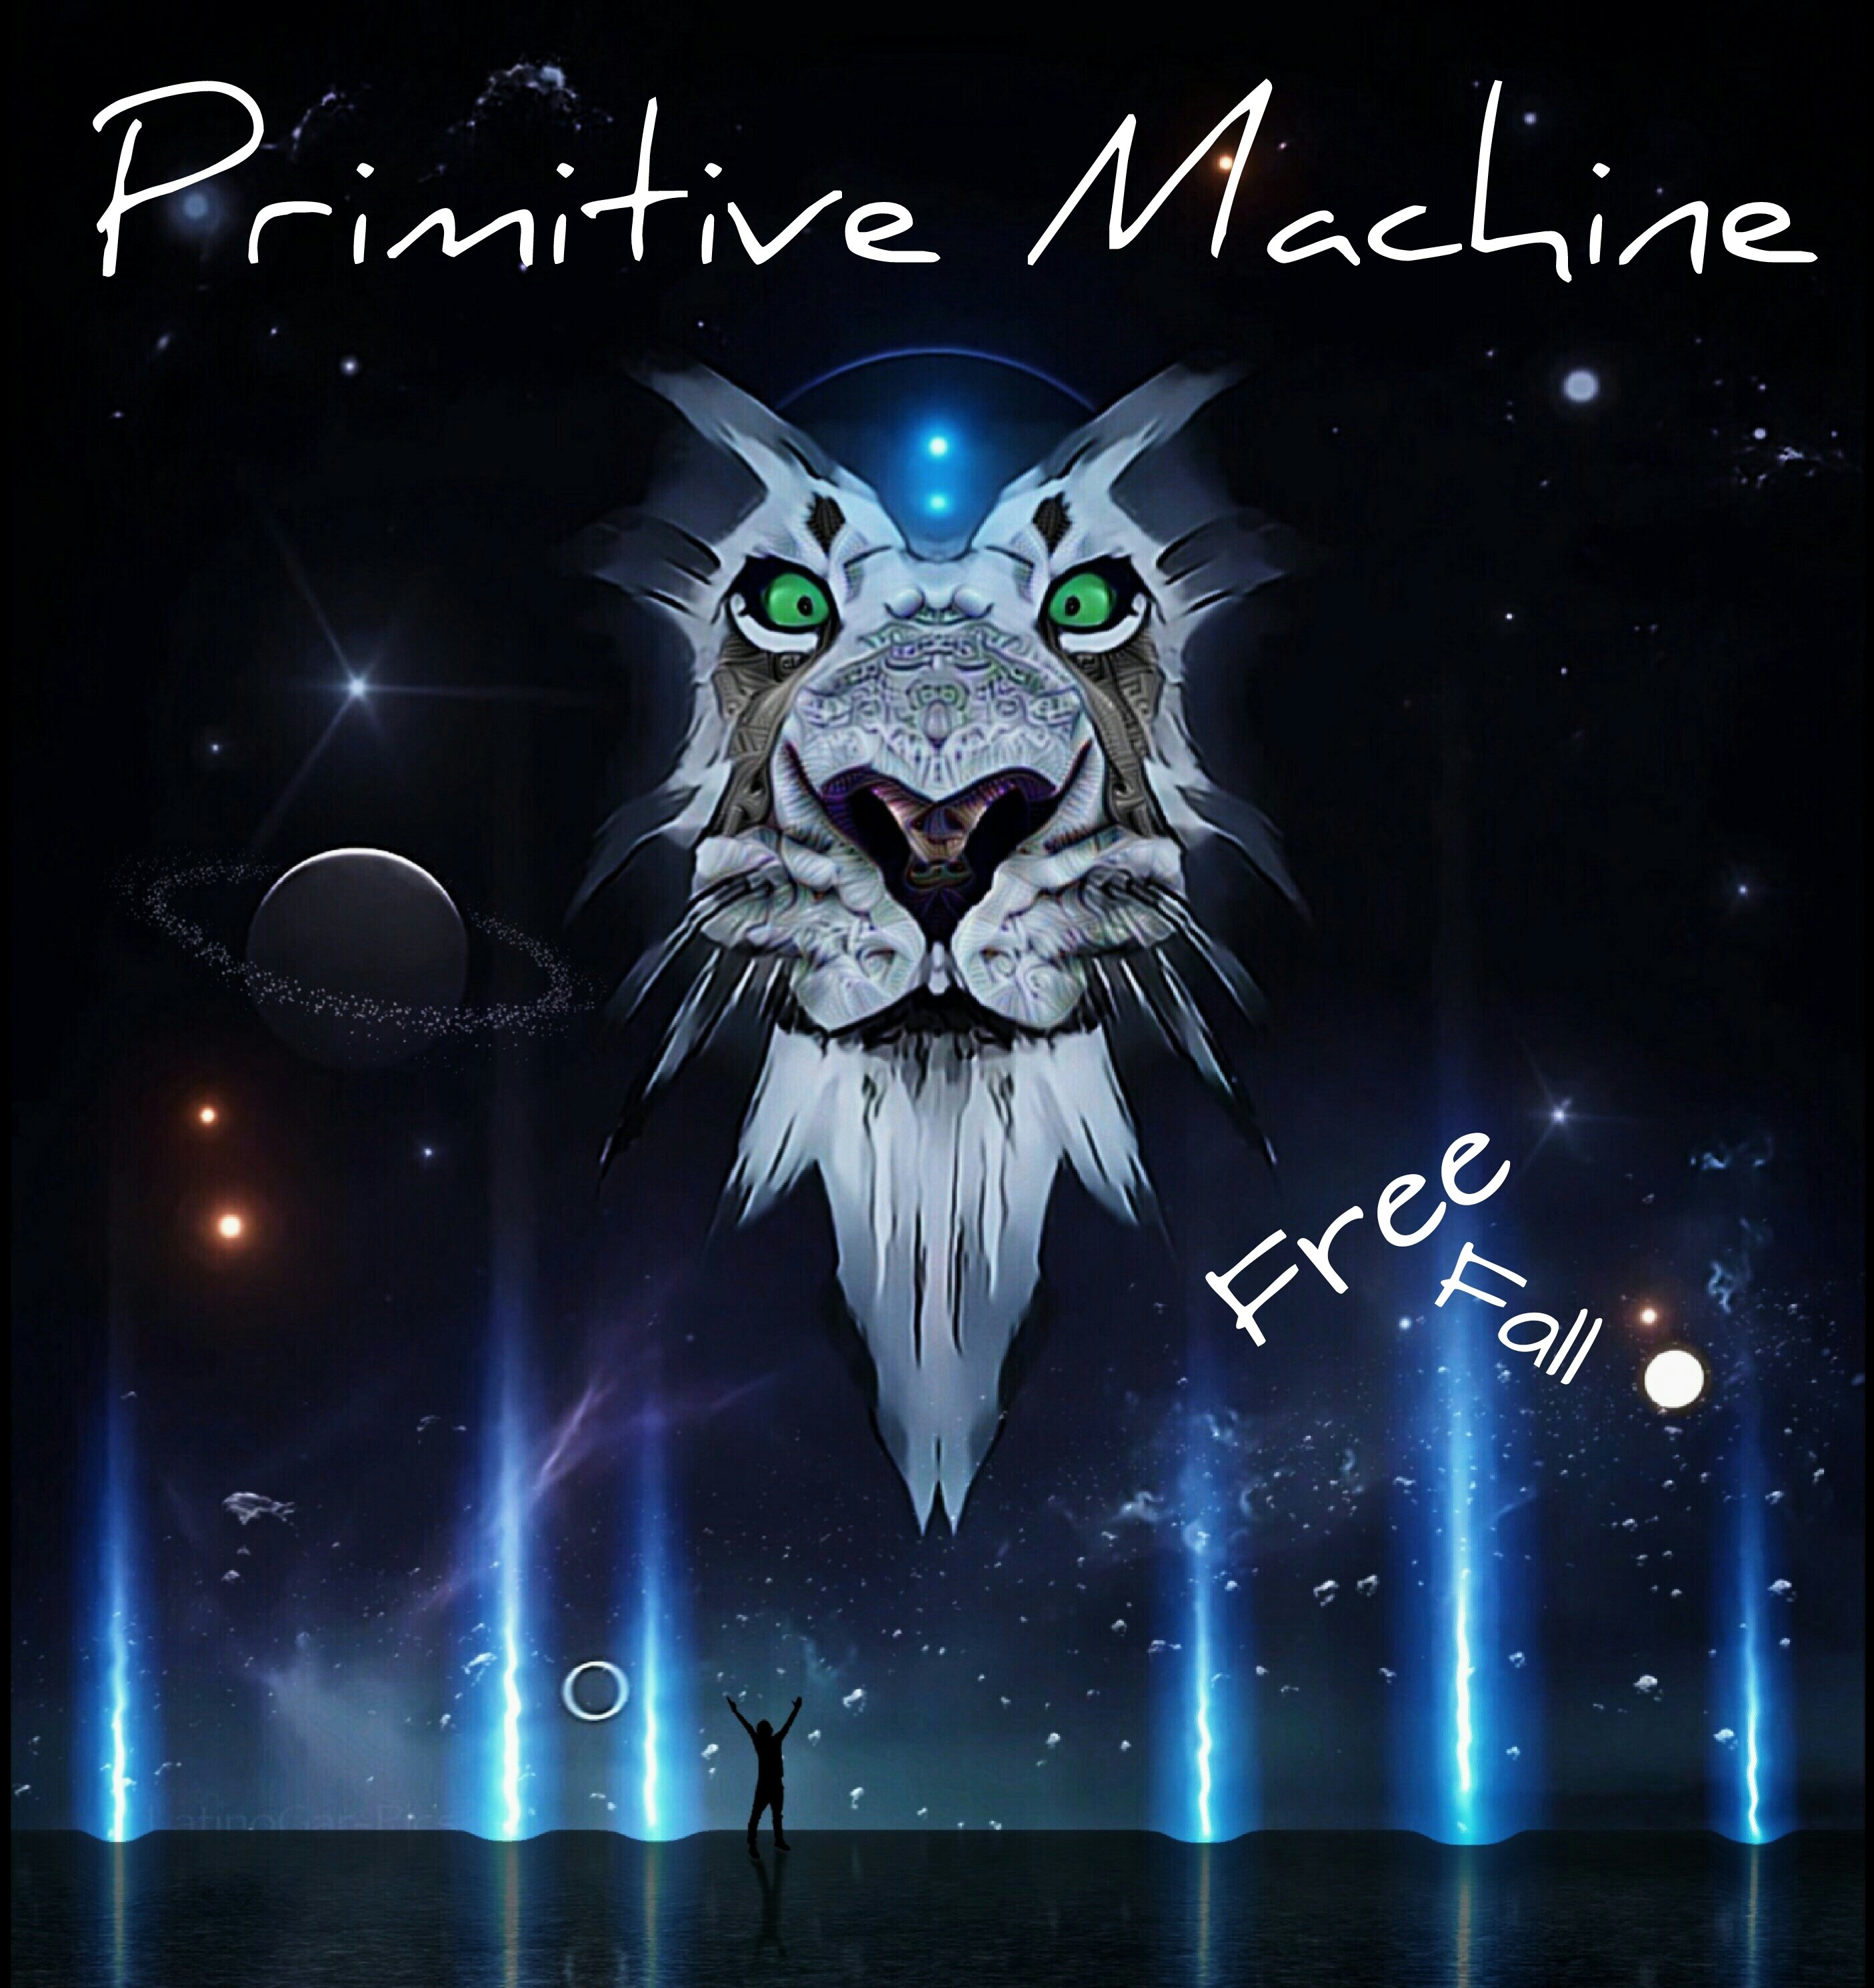 Episode 5: Drumming Blind – with Paul Costello of Primitive Machine